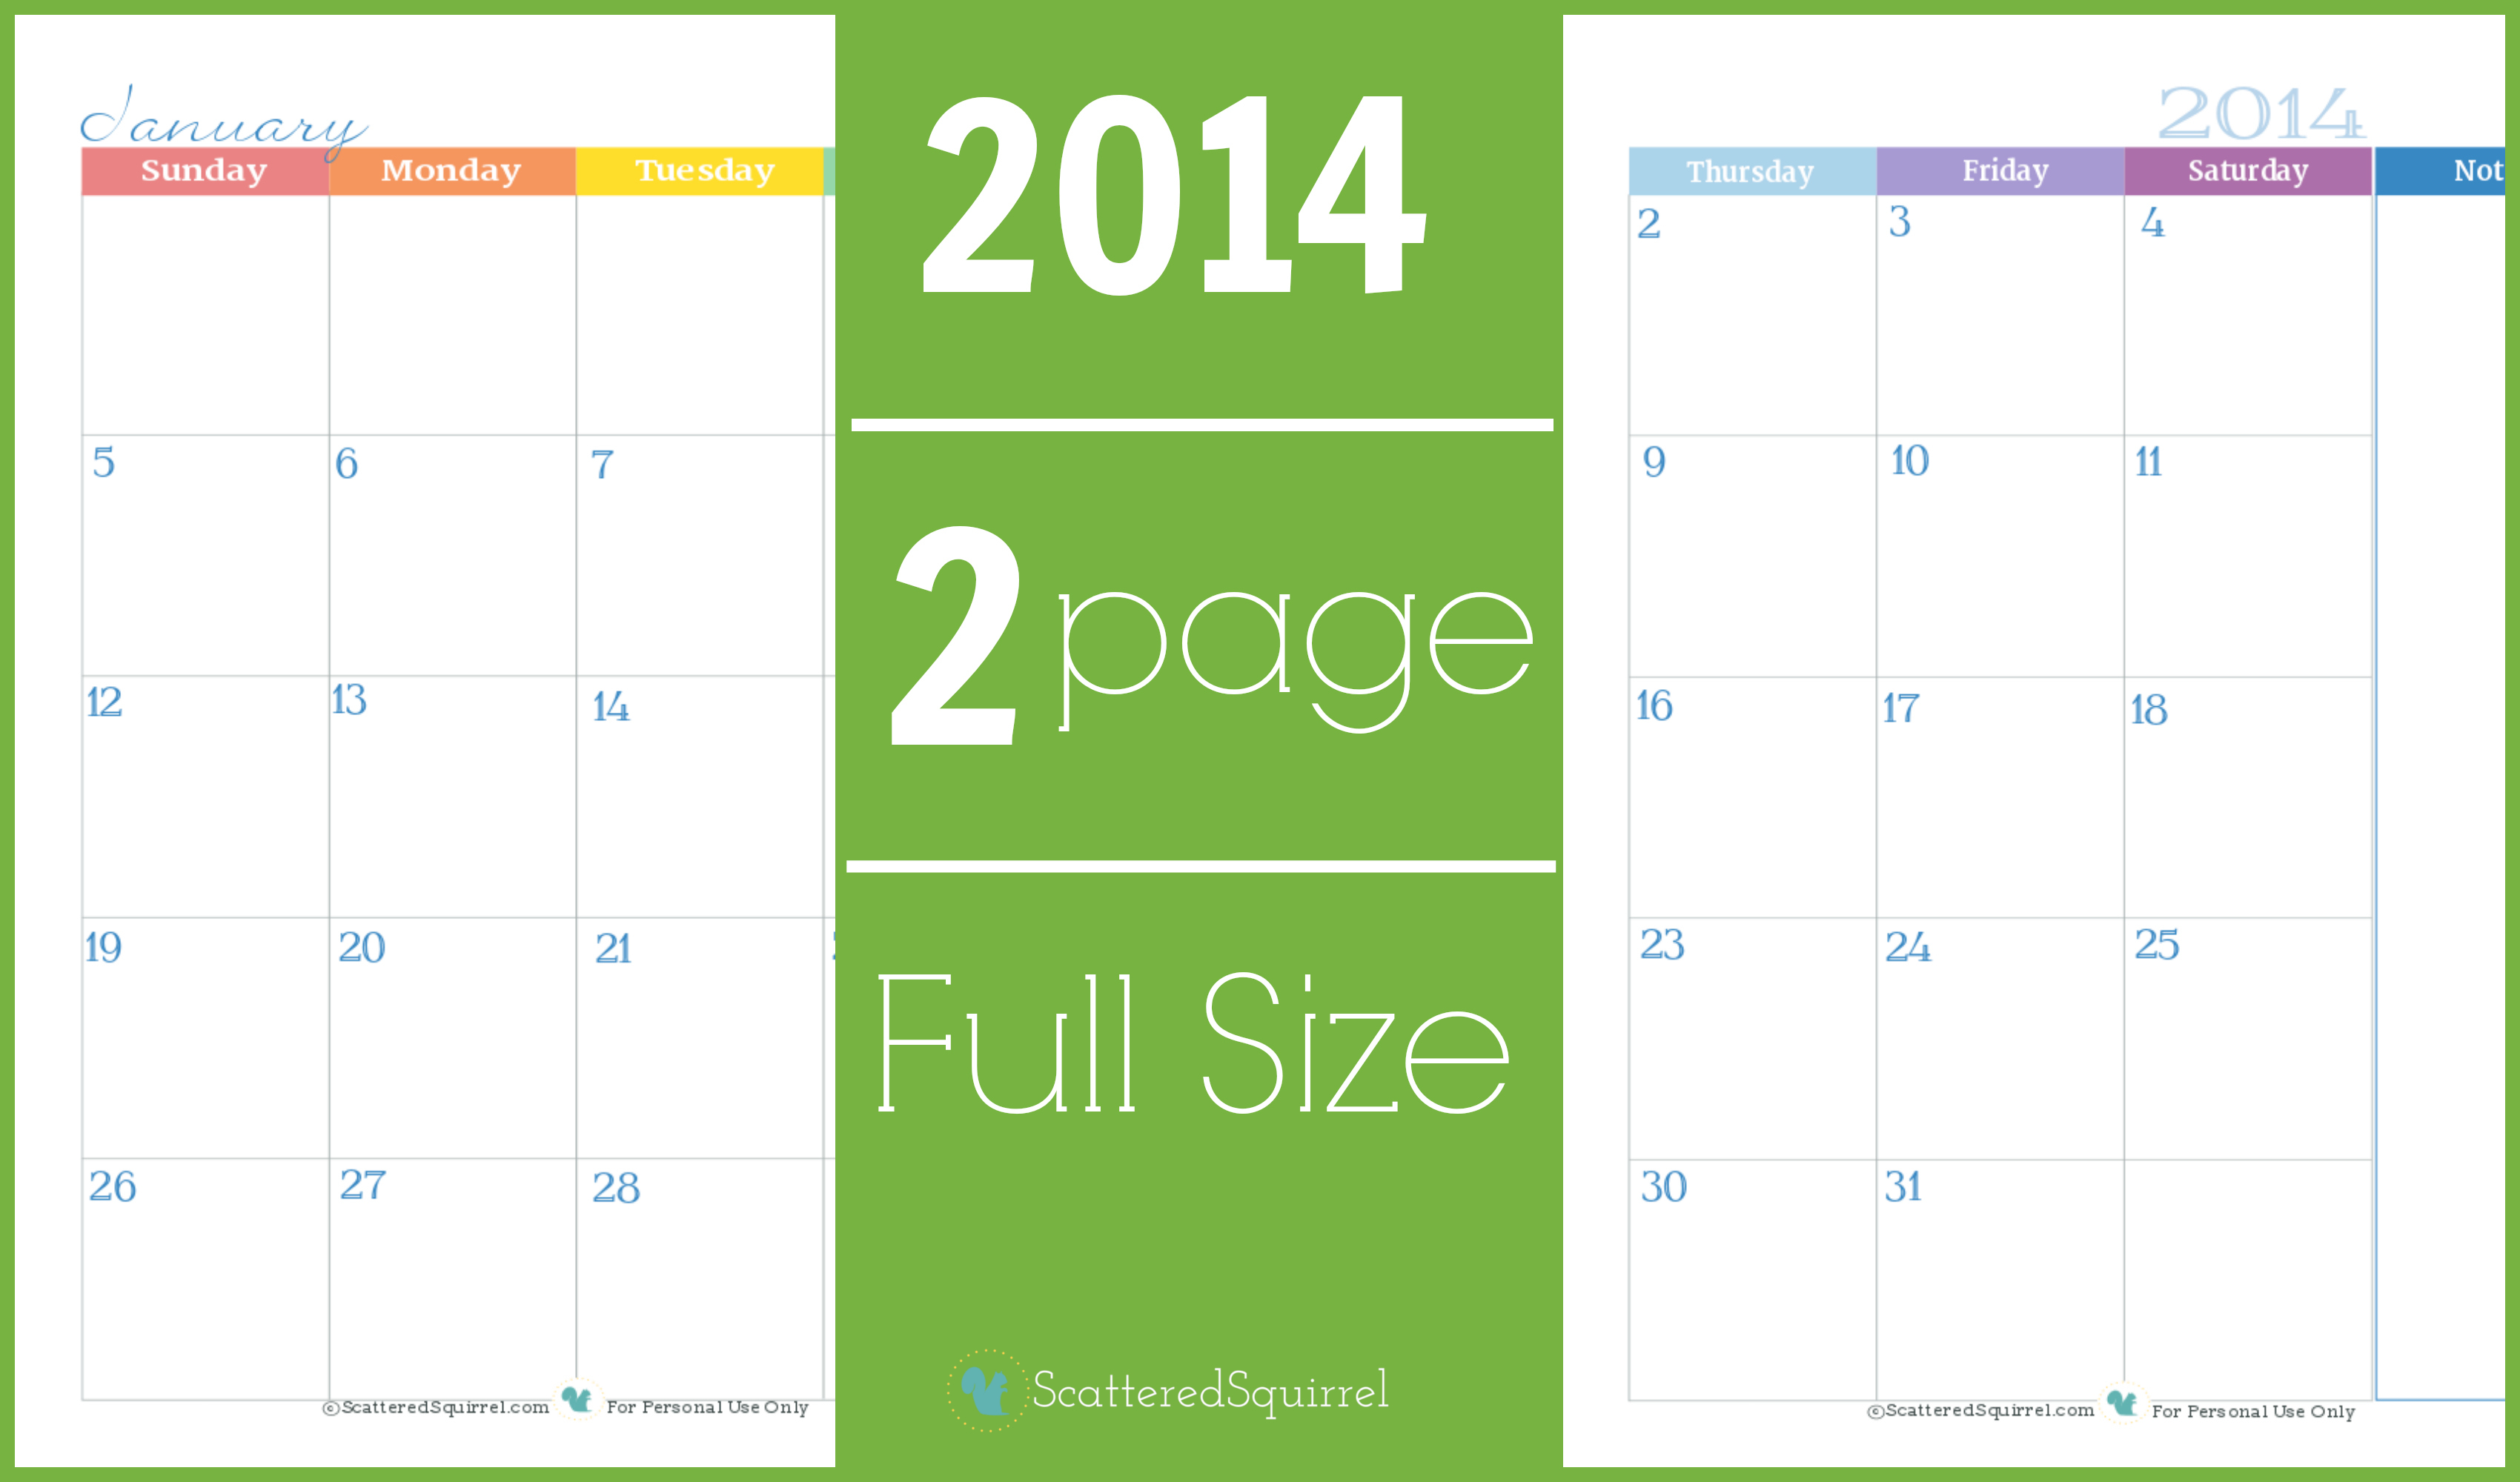 2014 Calendar: Two Page Monthly Scattered Squirrel